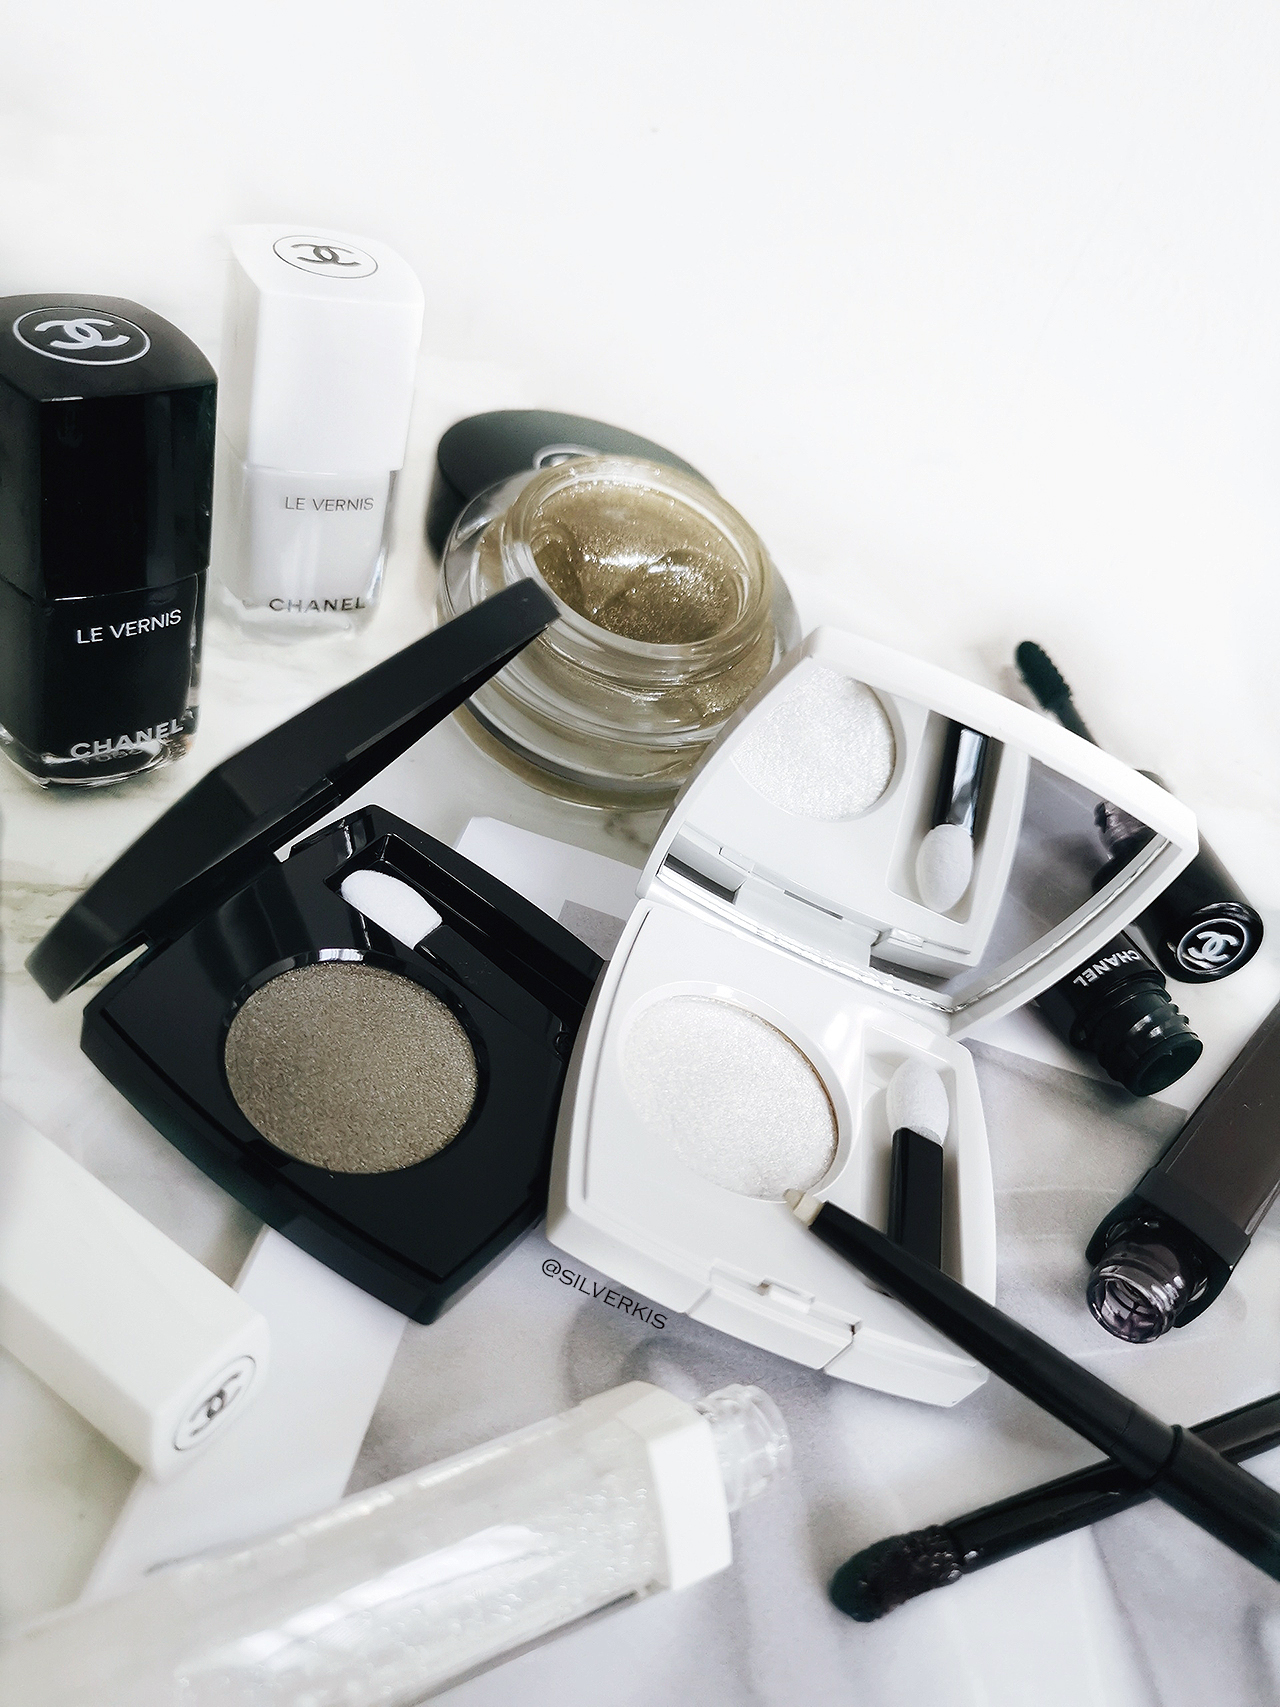 Chanel Noir et Blanc Collection for Fall 2019